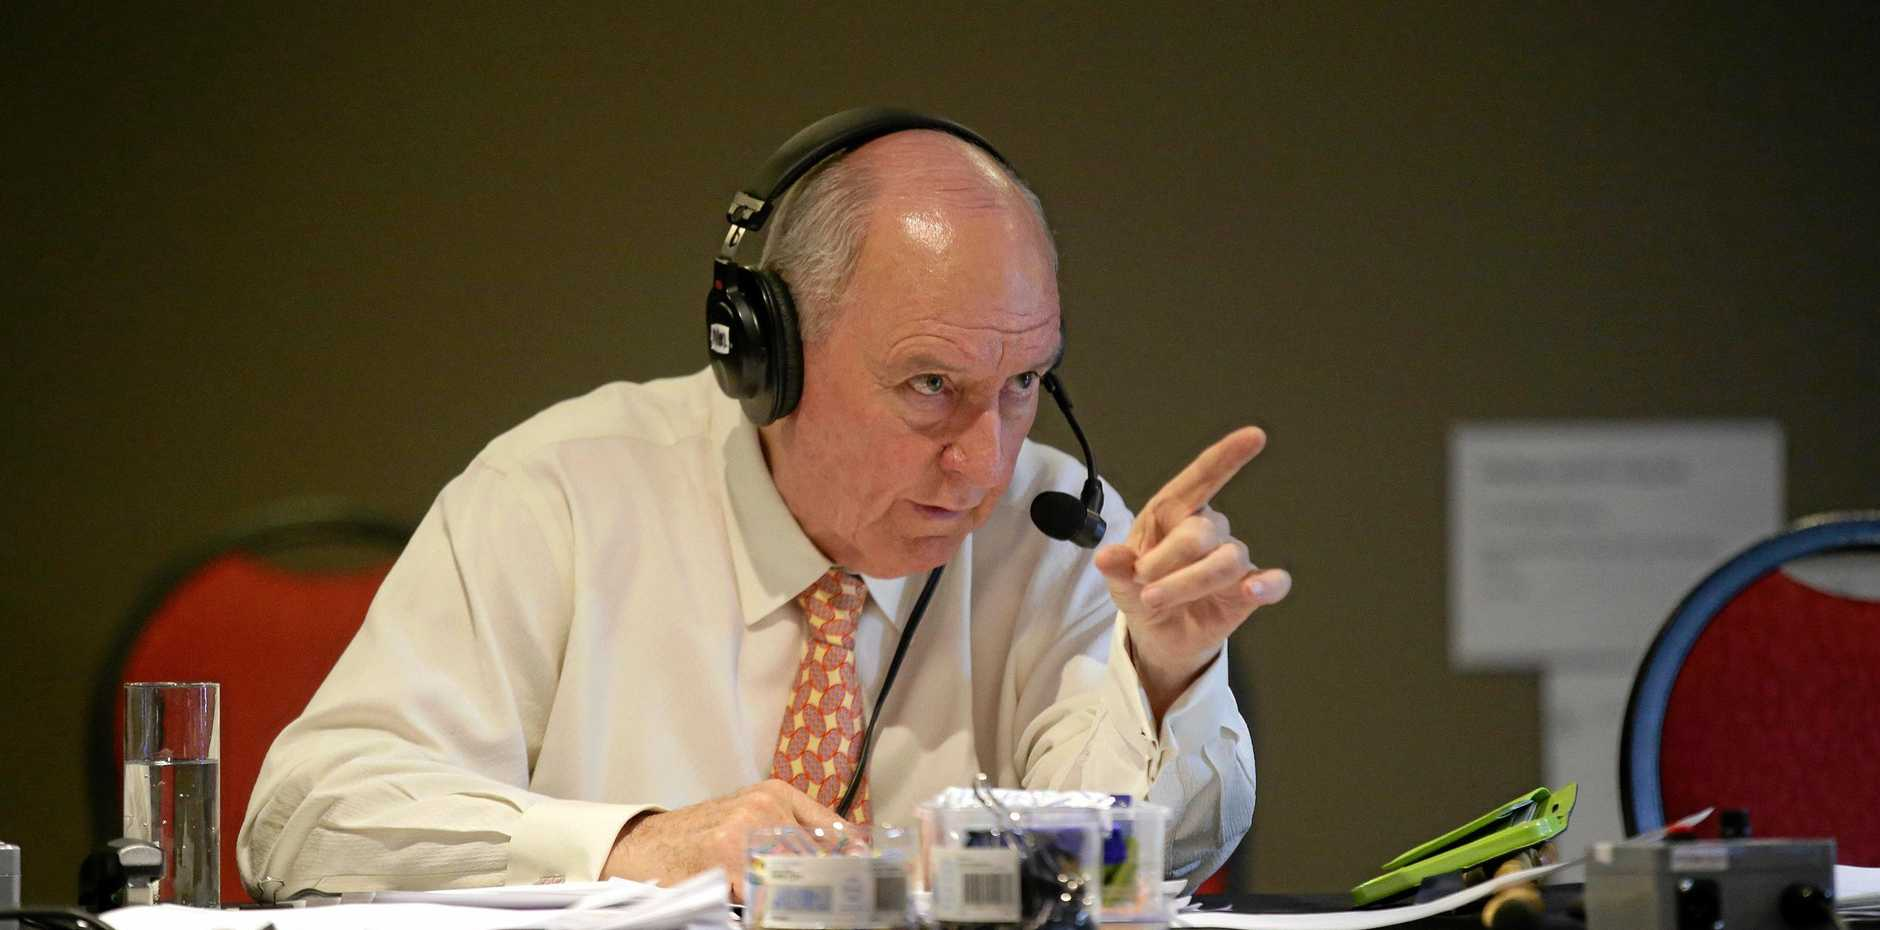 A DAY IN THE LIFE: Alan Jones courts controversy as part of his job as a shock jock.